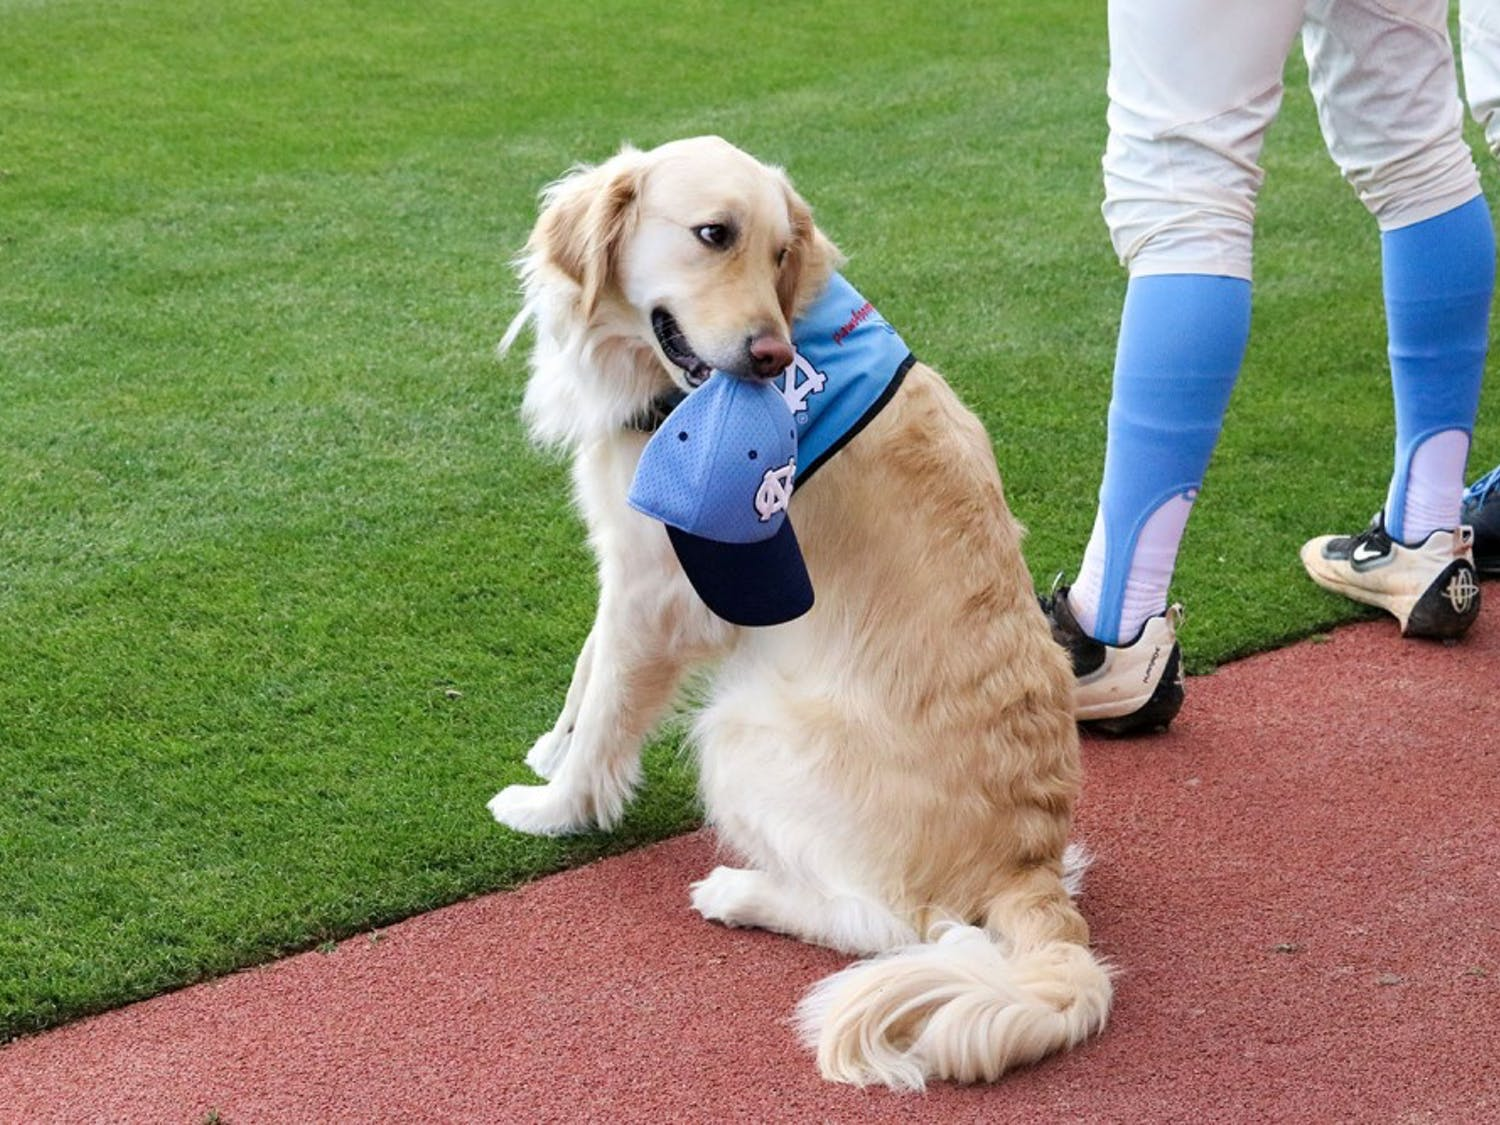 REMINGTON is a member of the North Carolina baseball team this season. As the service facilities dog, he aids the players with physical therapy as well as carrying out the game ball.